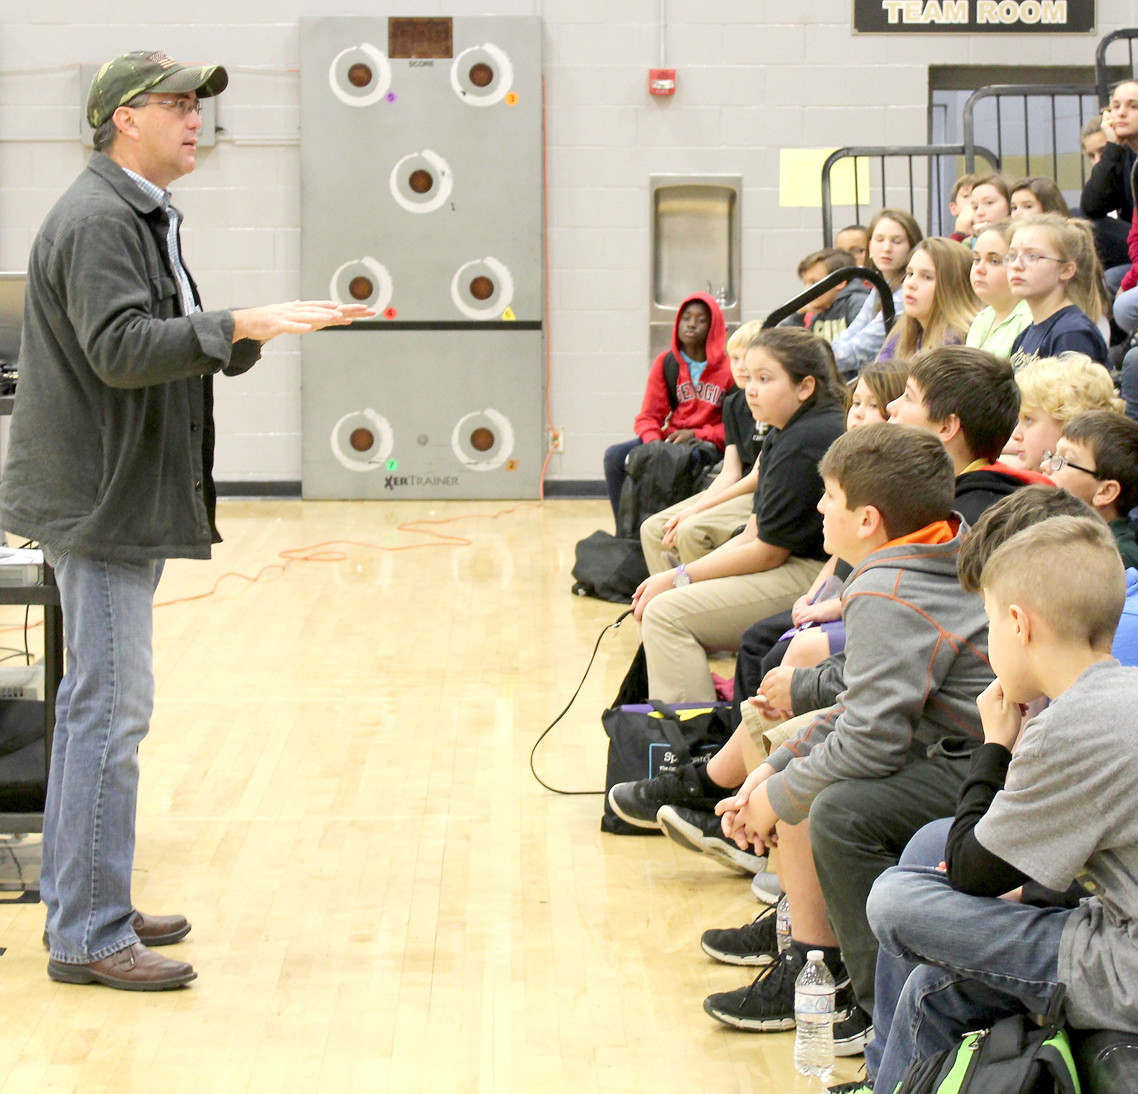 SCOTT ELAM, board chairman for The Bridge, makes a point about avoiding using other people's prescription medications while speaking at Lake Forest Middle School.